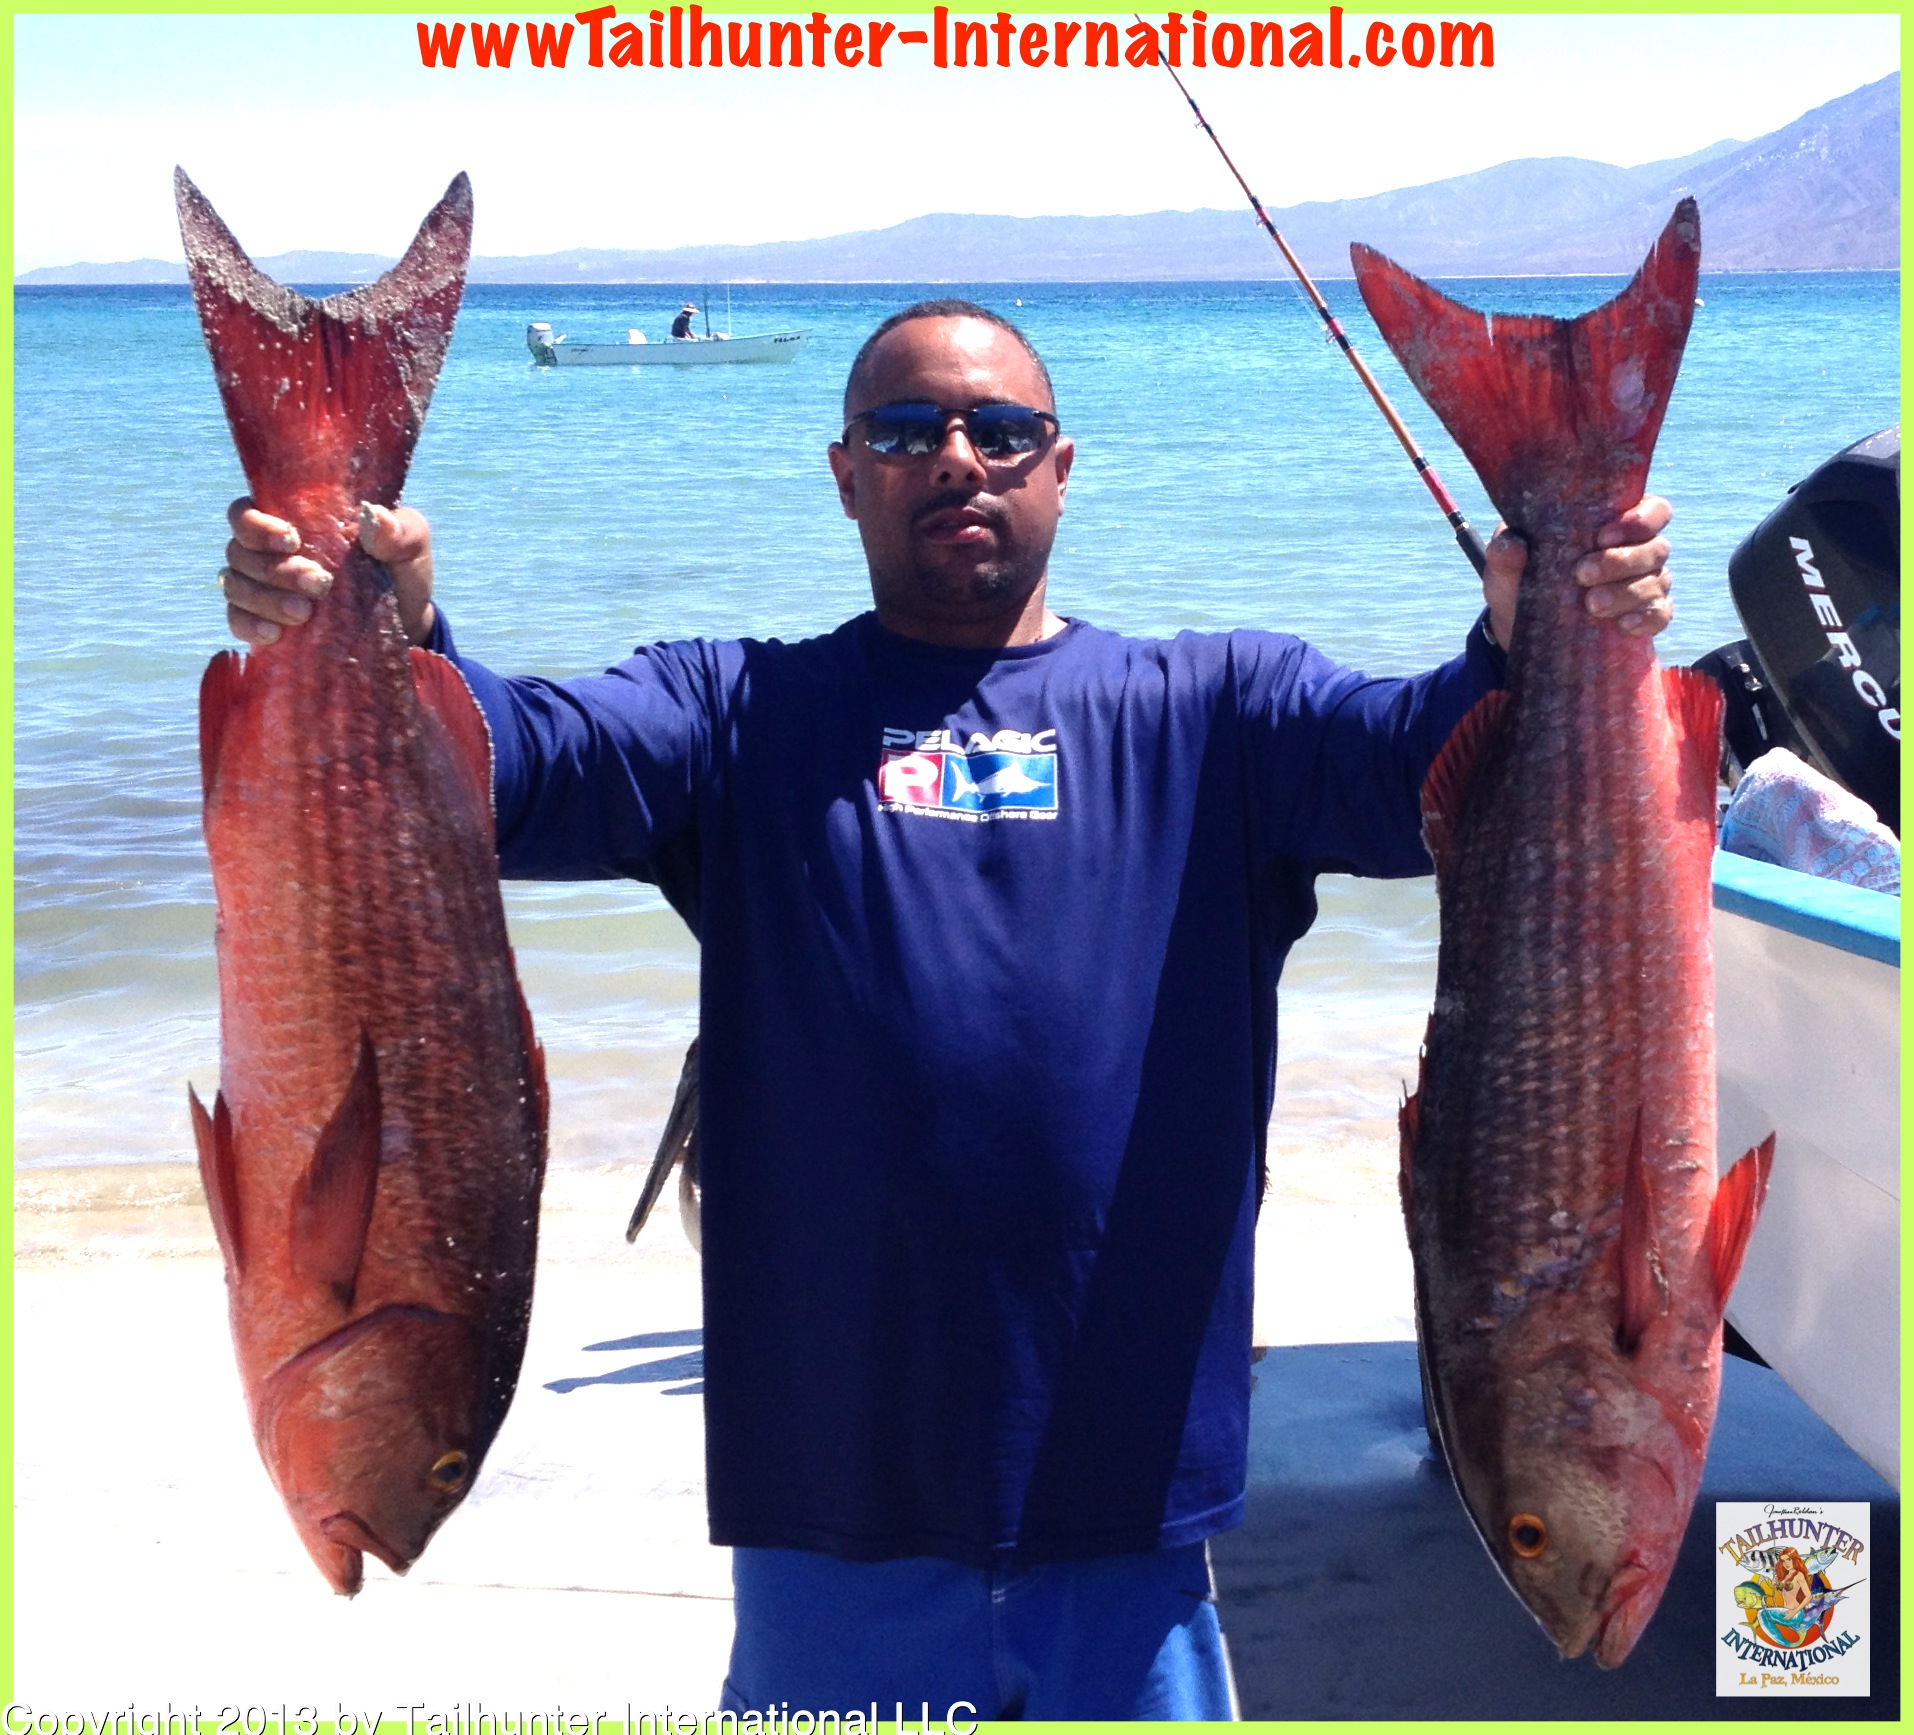 La paz las arenas fishing report from tailhunter for Antioch fishing report